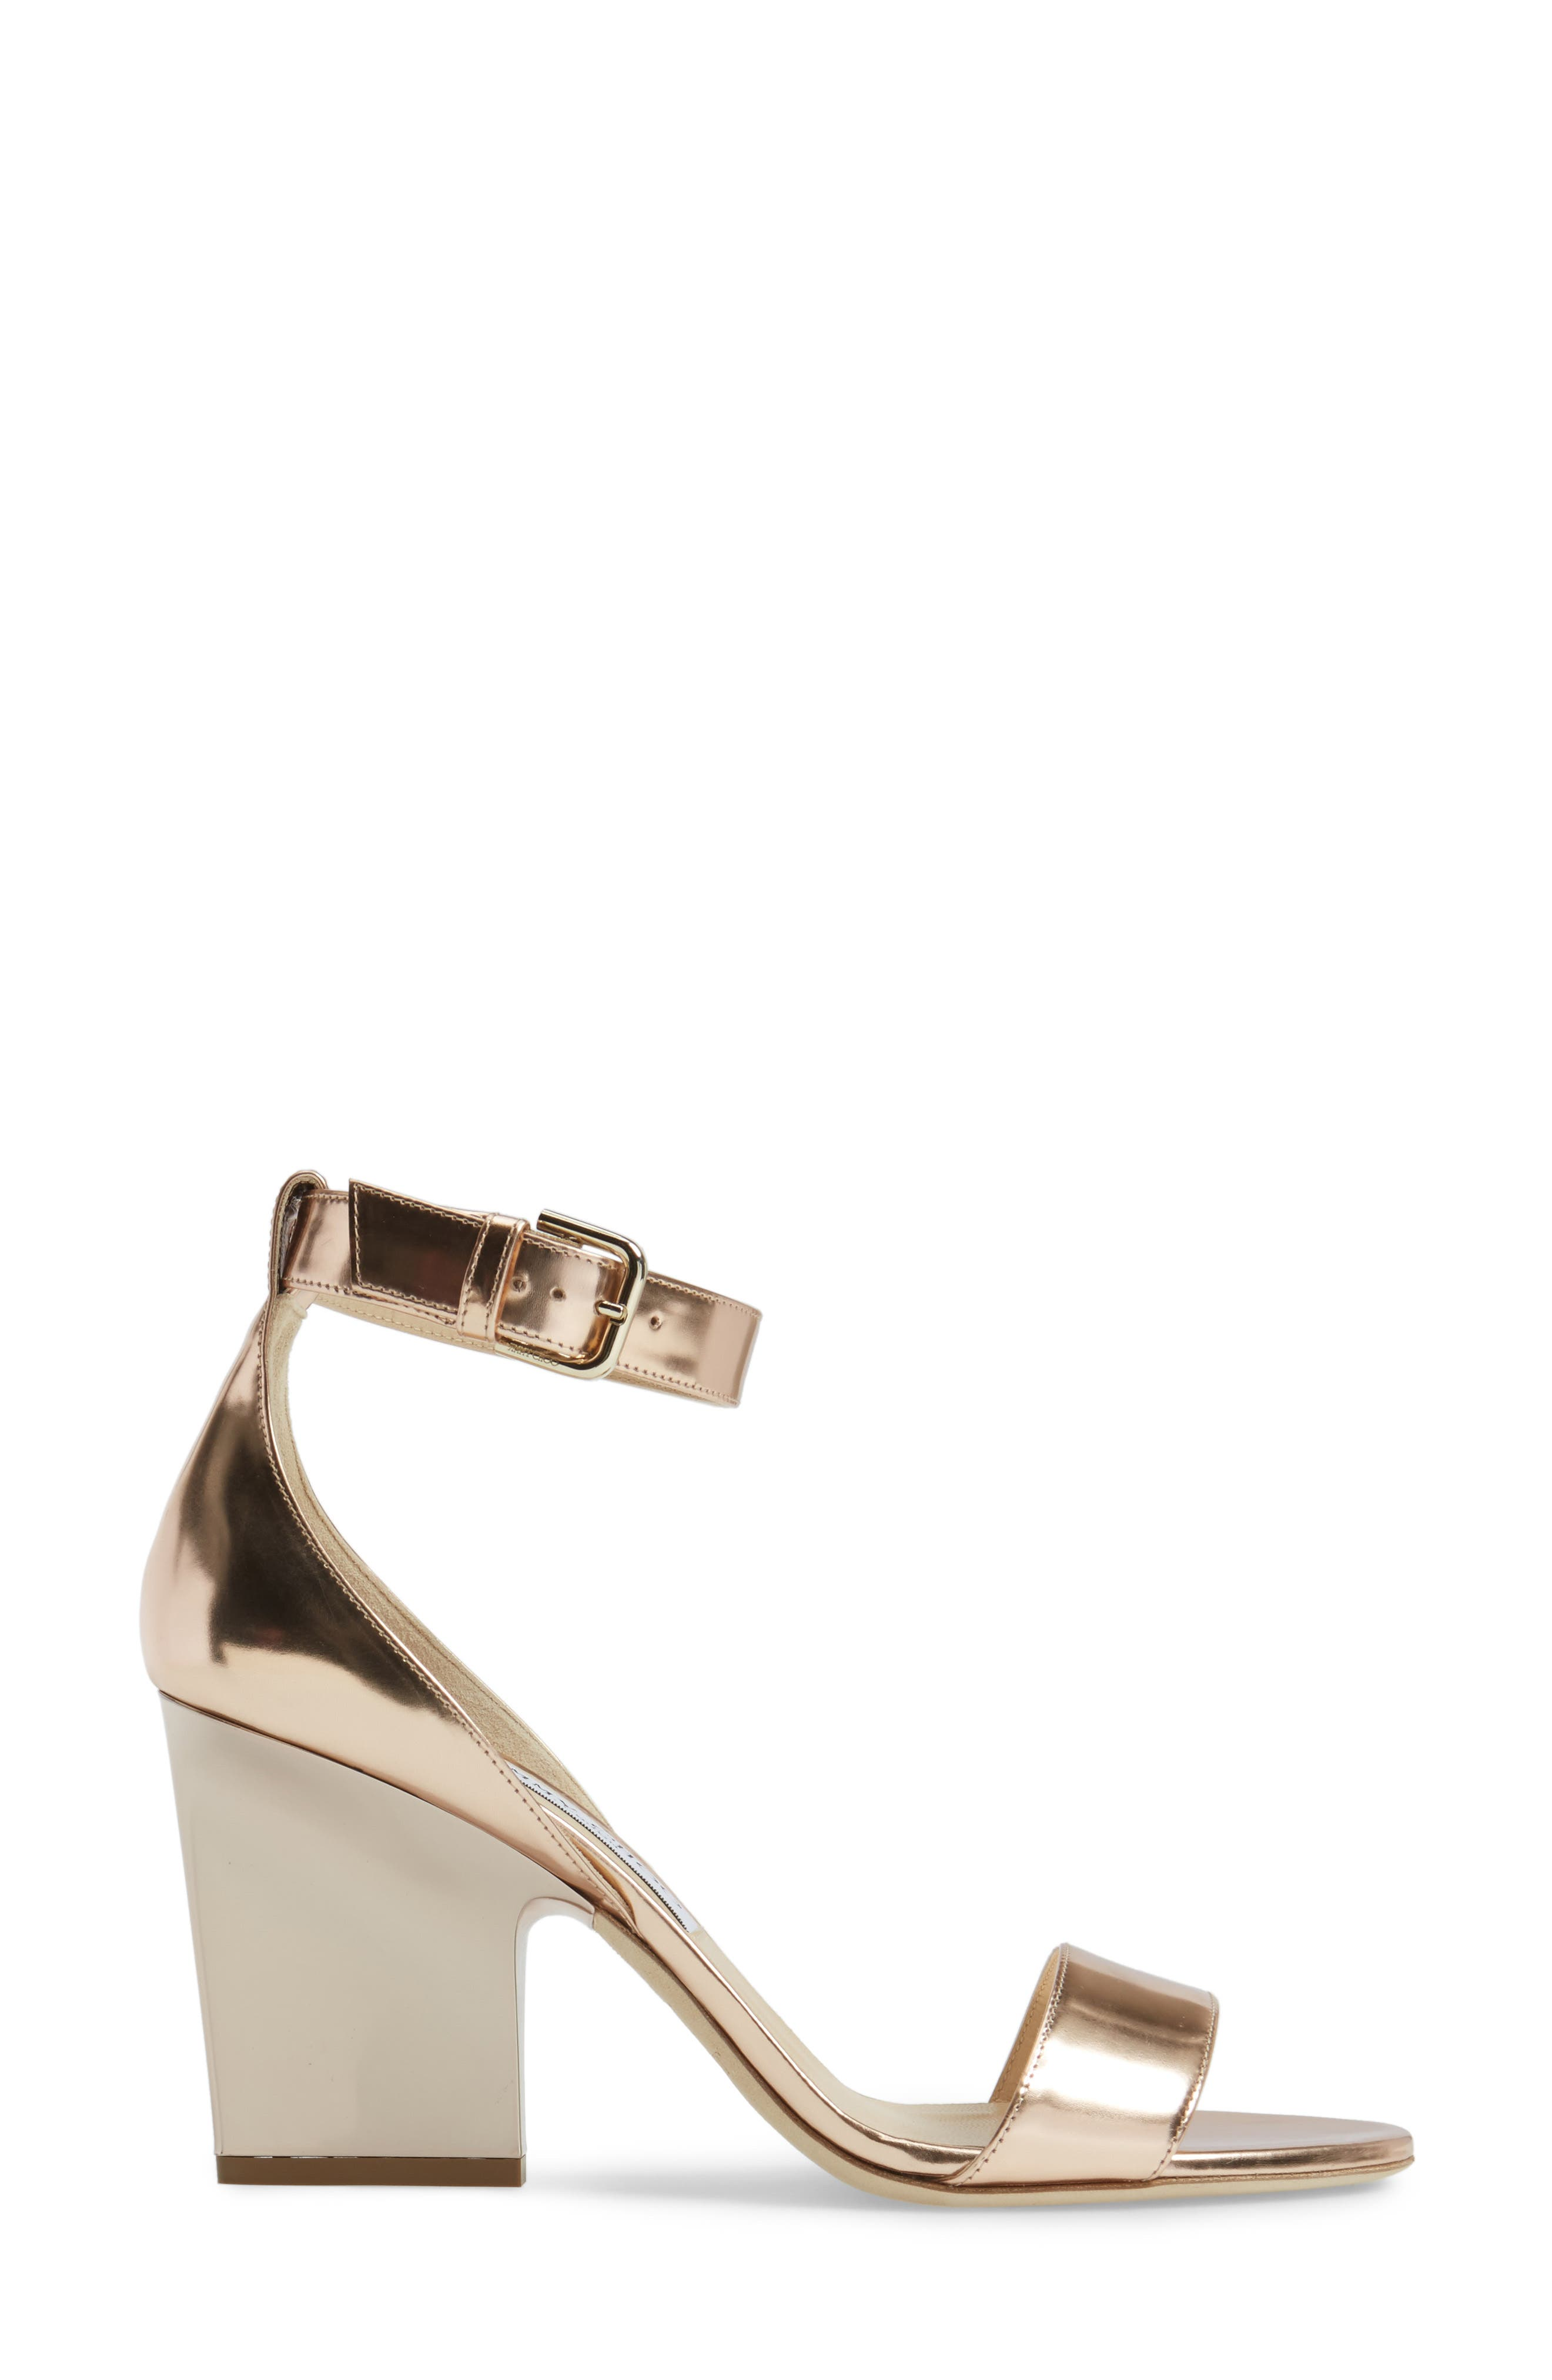 Edina Ankle Strap Sandal,                             Alternate thumbnail 3, color,                             710